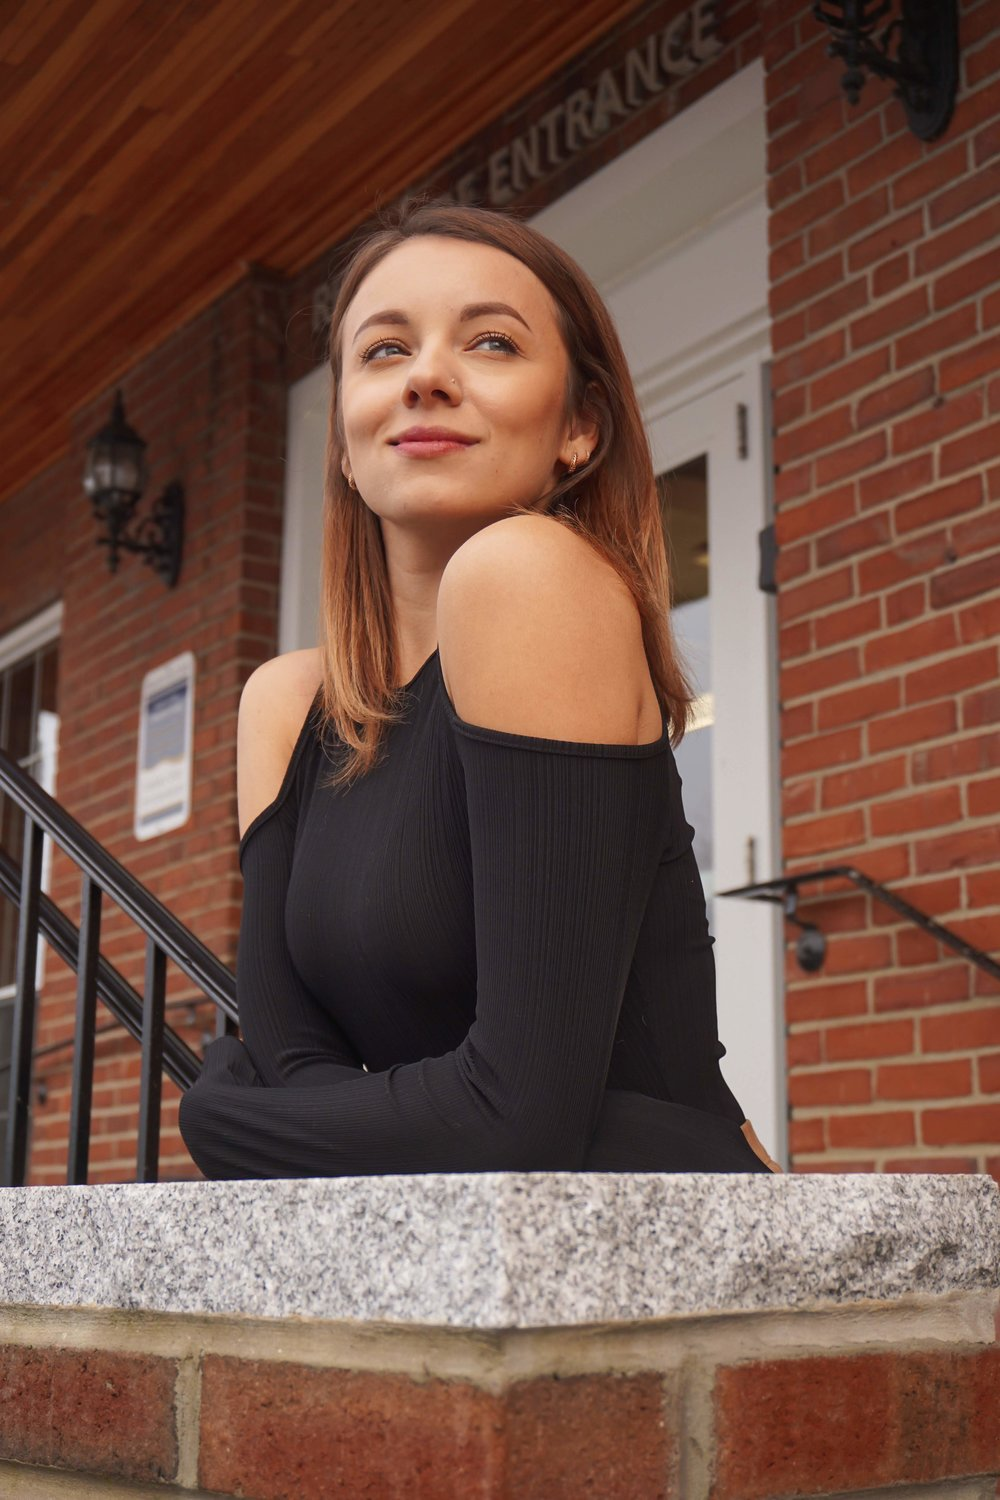 A close-up portrait of a blogger wearing a back shirt with open shoulders.